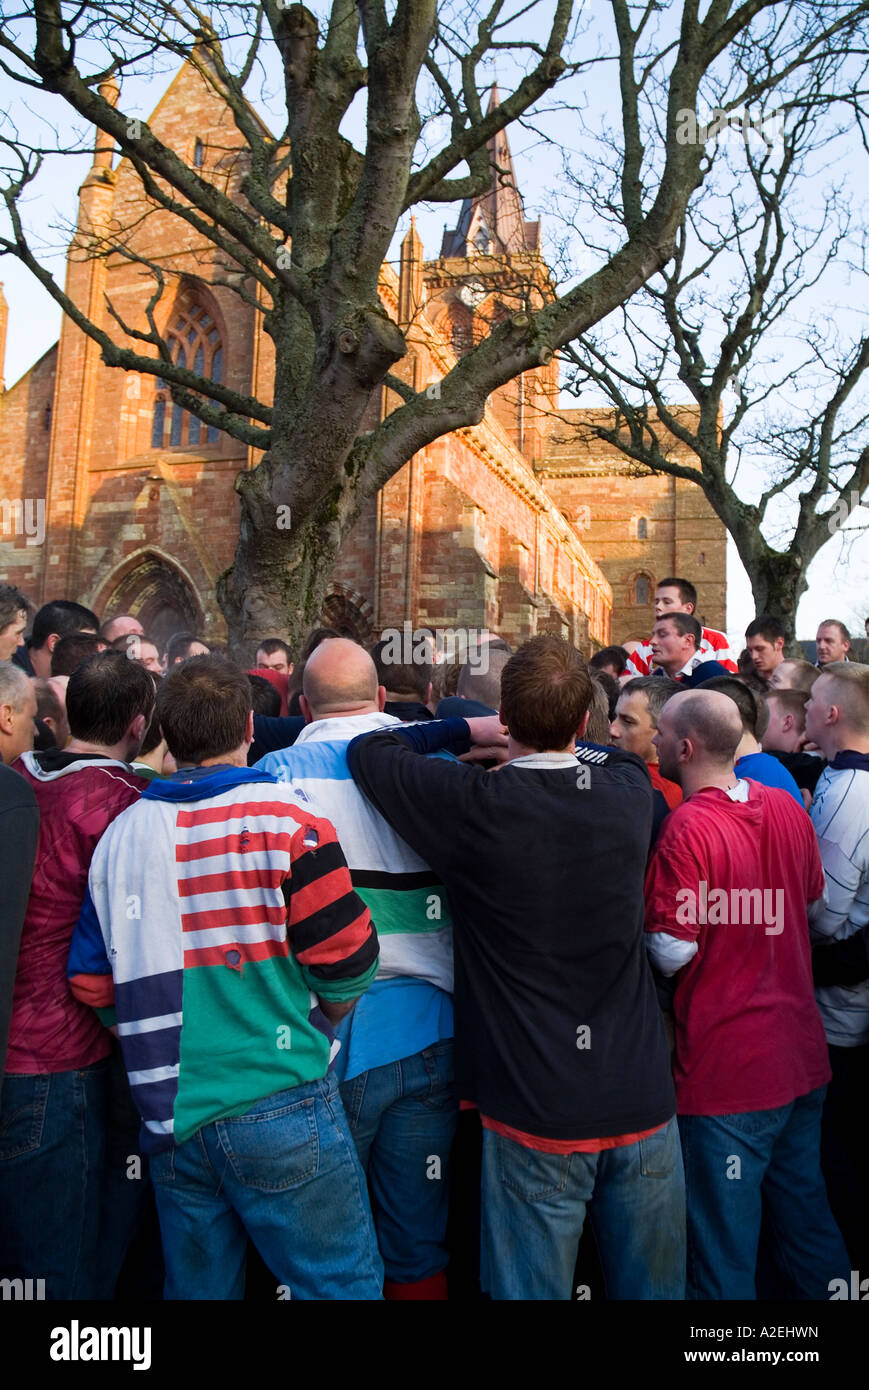 dh The Ba KIRKWALL ORKNEY Pack of Ba players St Magnus Cathedral christmas day ball game Scotland Stock Photo